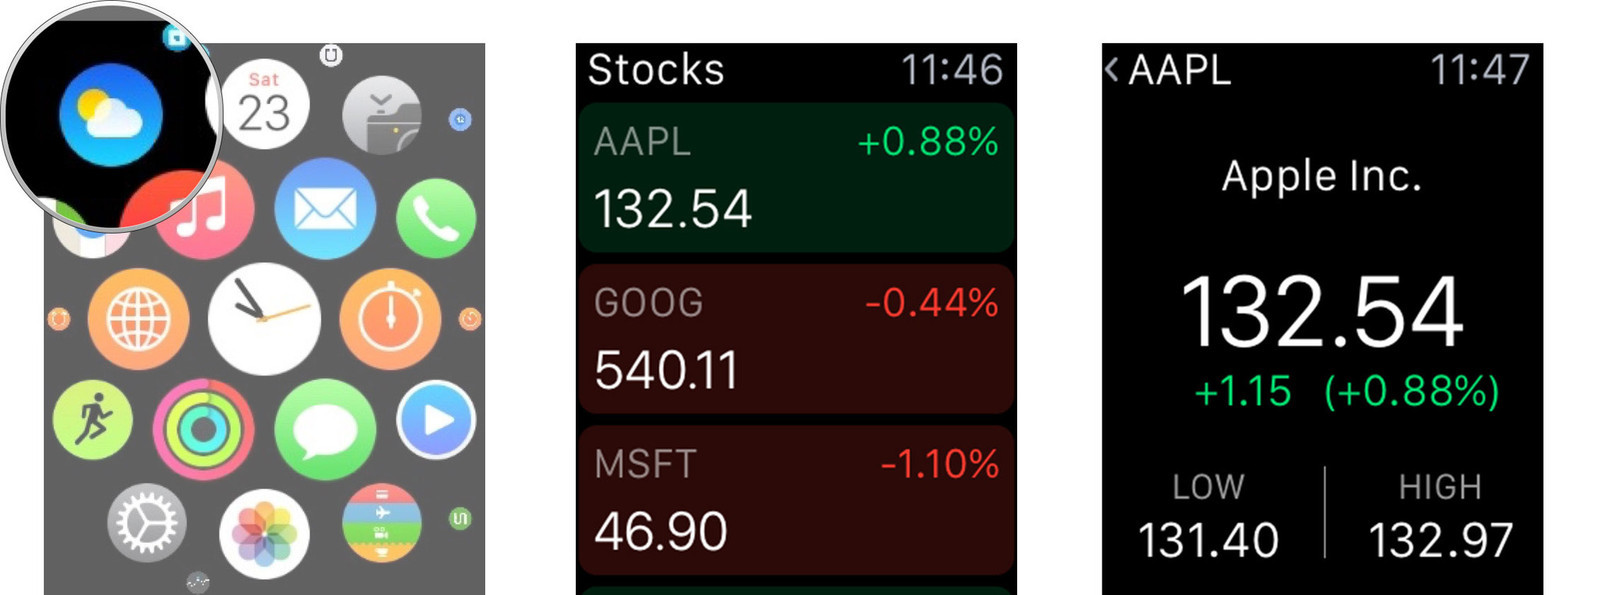 how to check stocks on your apple watch imore